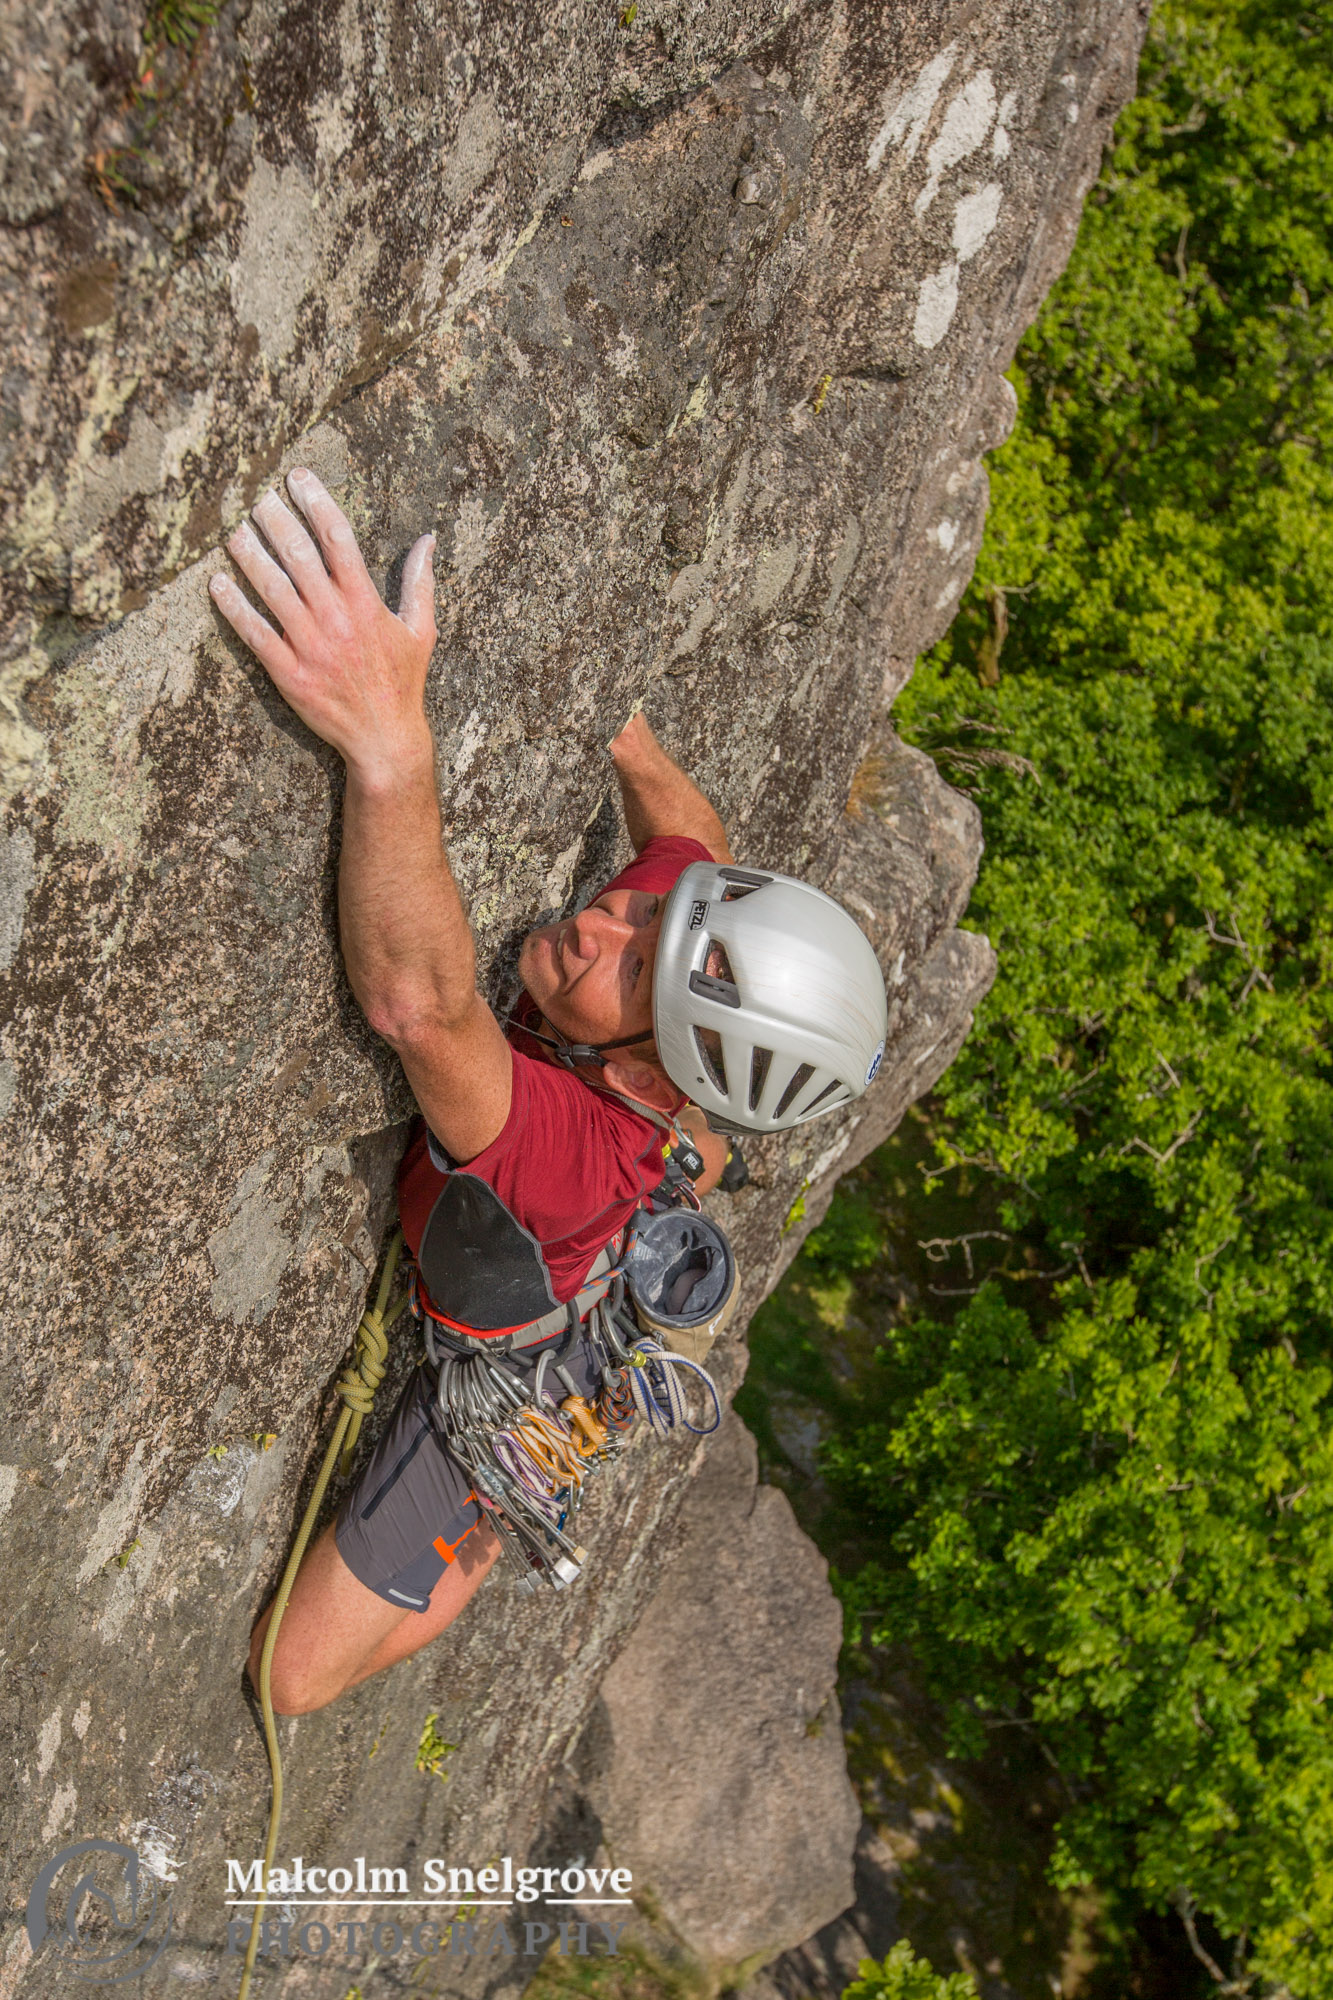 Head On Out climbing and mountaineering trips, transport from London included